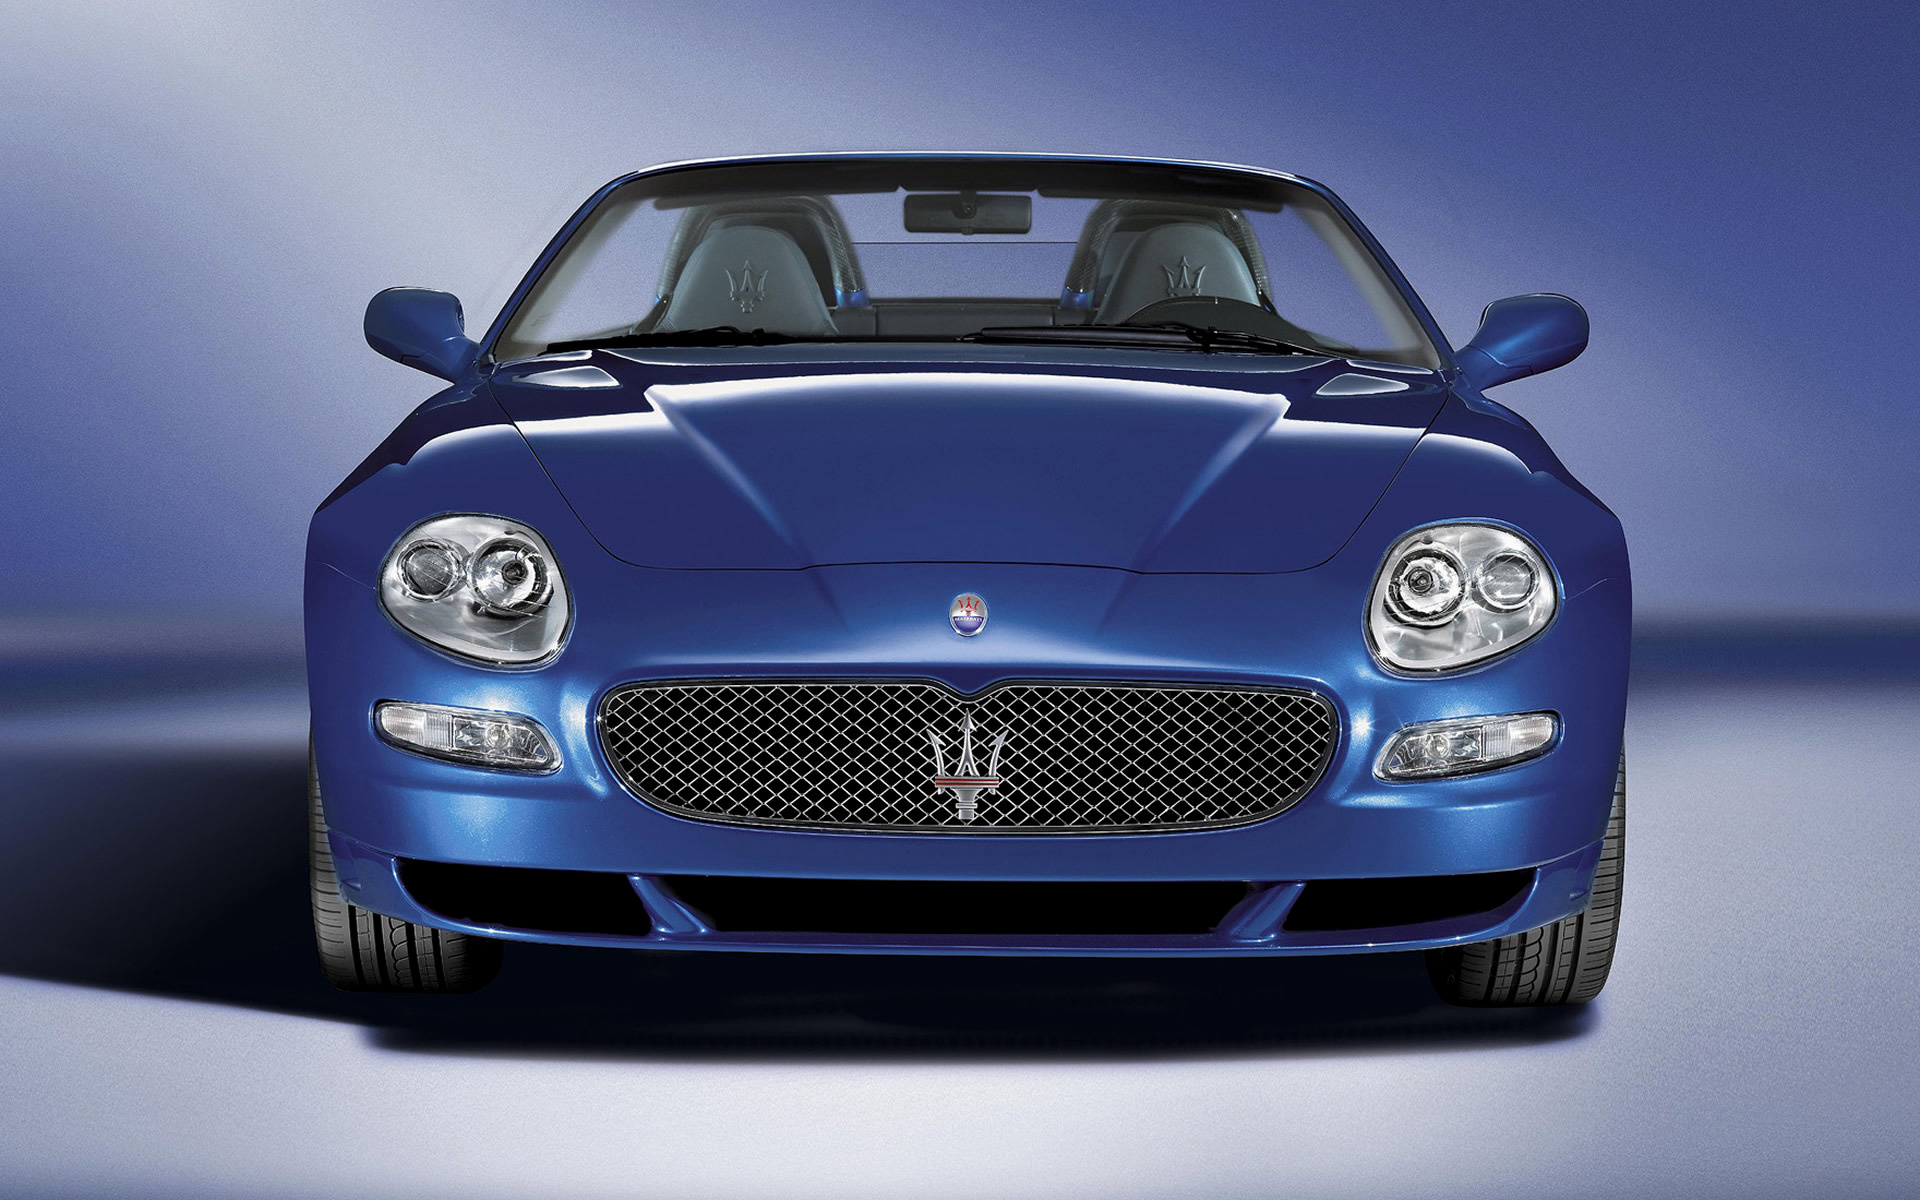 Maserati Spyder 90th Anniversary (2005) Wallpapers and HD Images ...